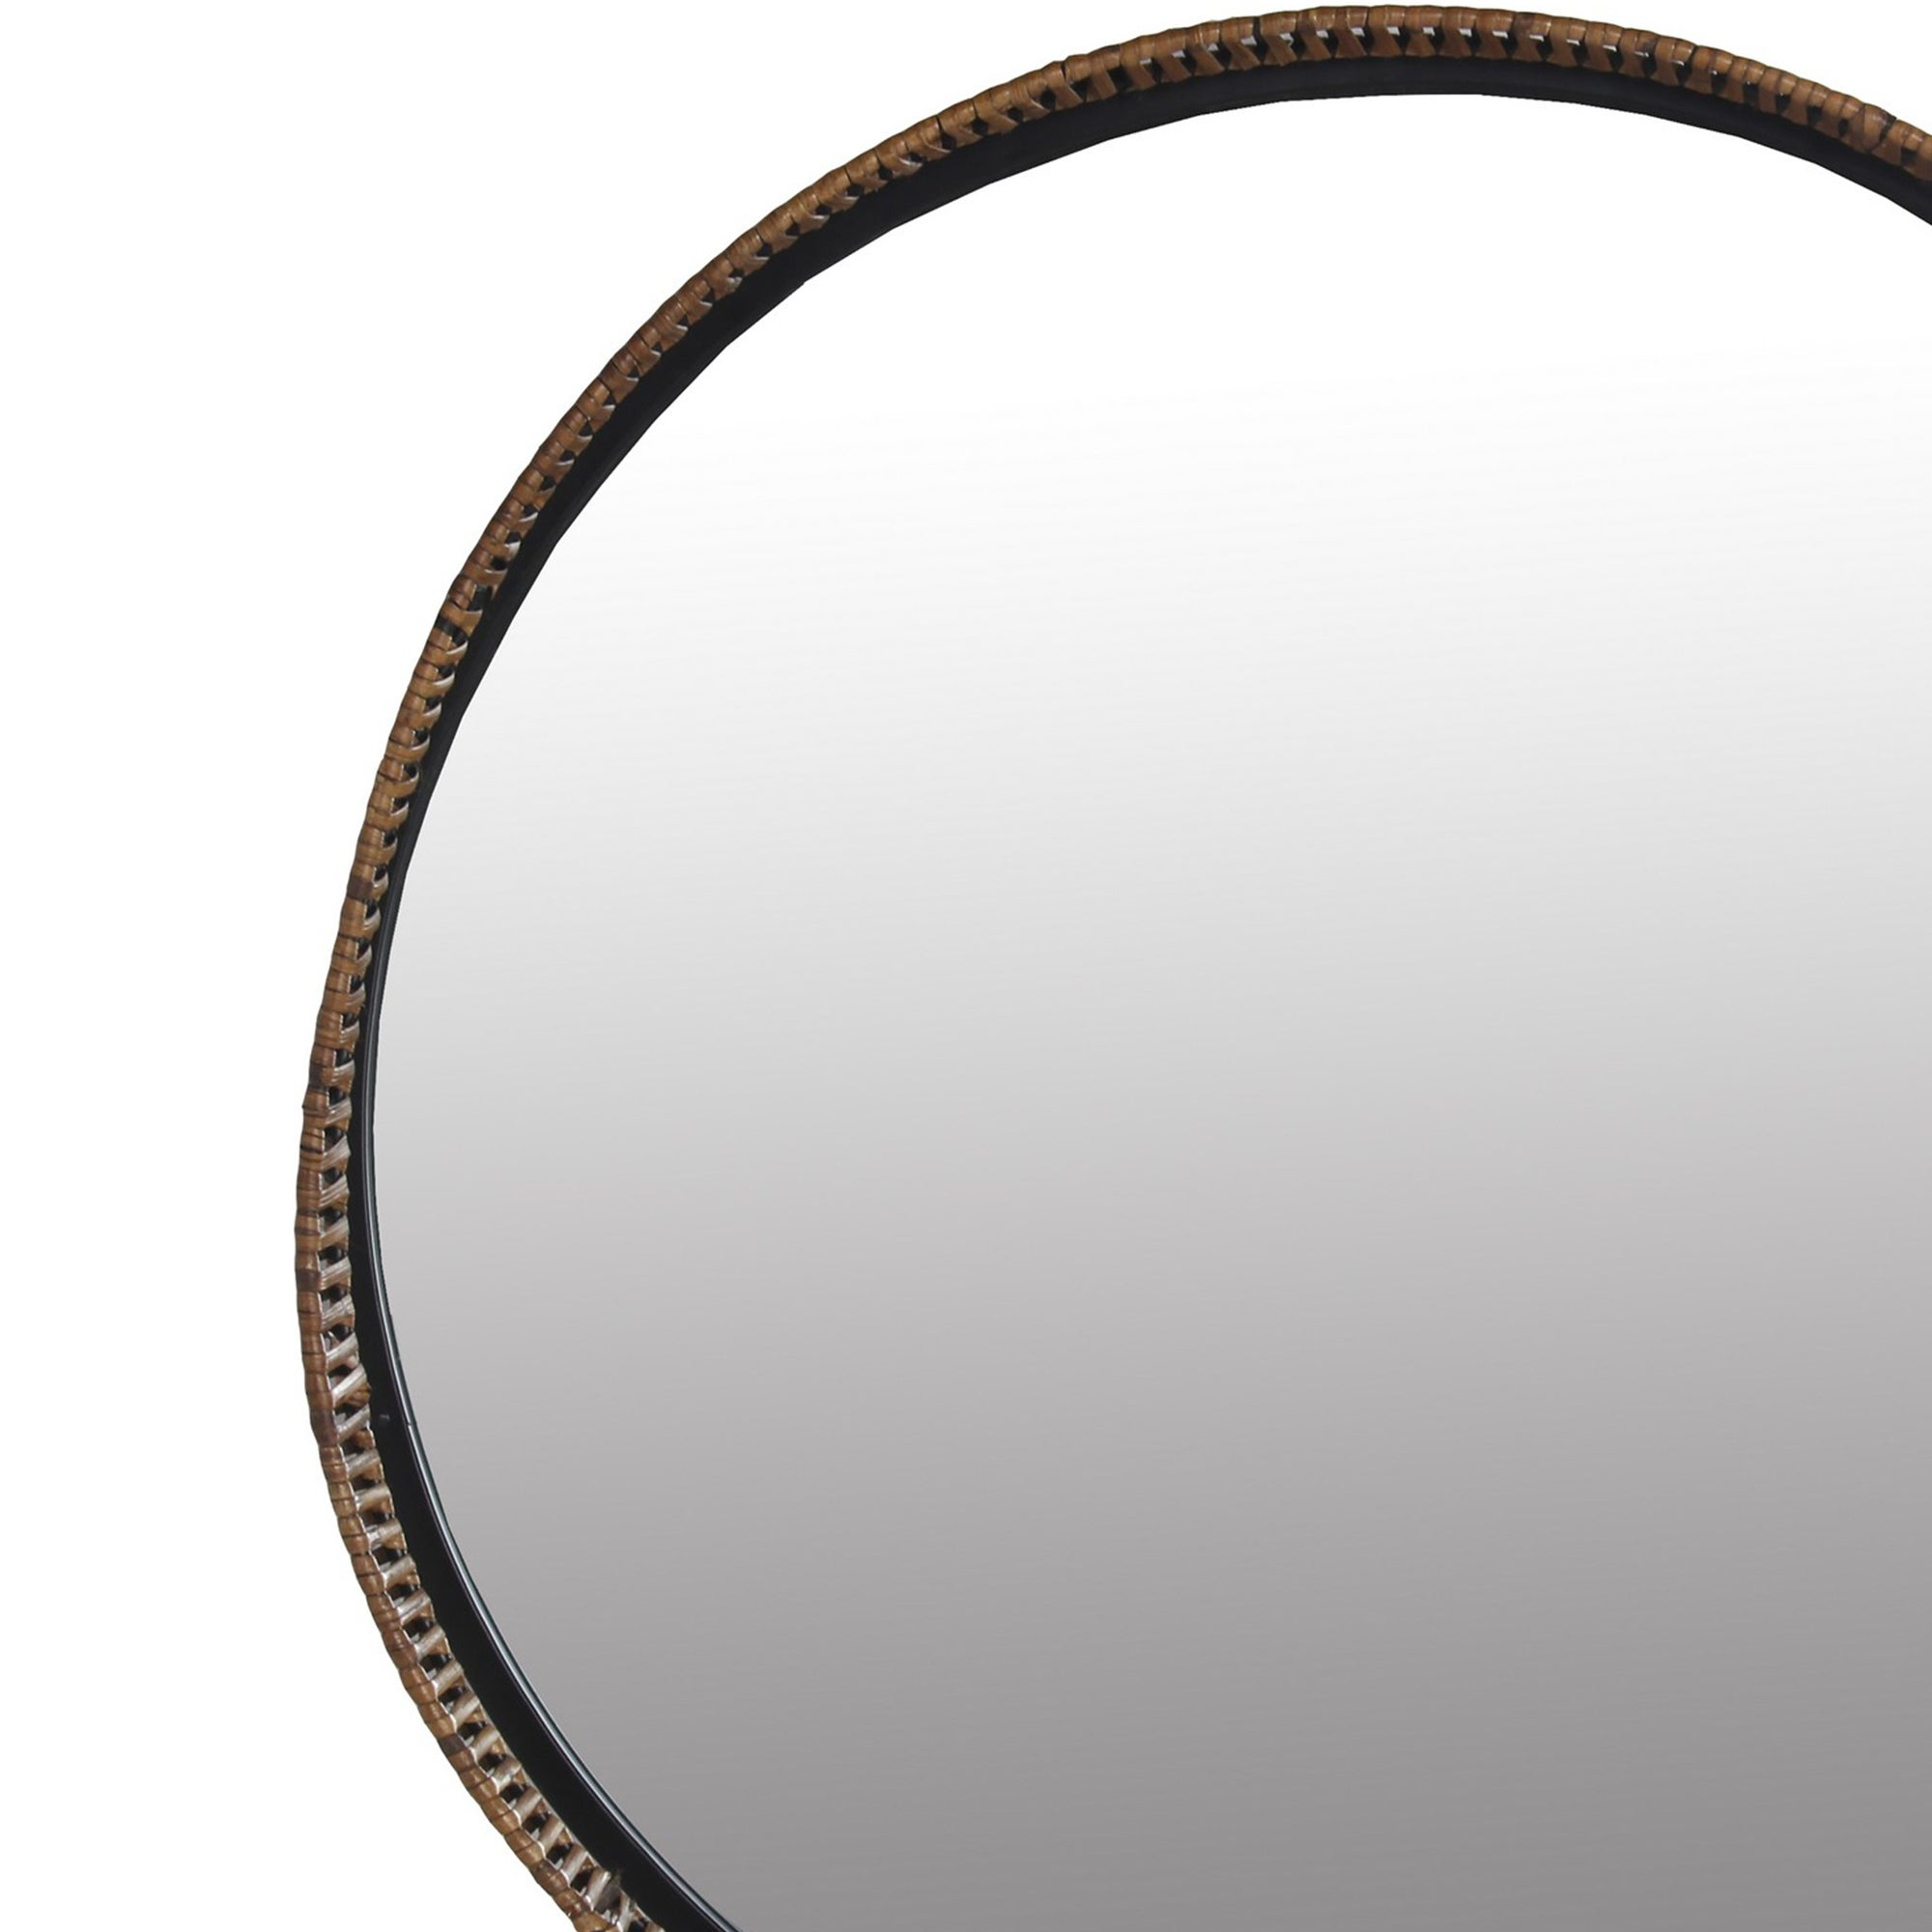 Shop Round Metal Frame Wall Mirror With Rattan Encasing Black And Brown On Sale Overstock 31251579